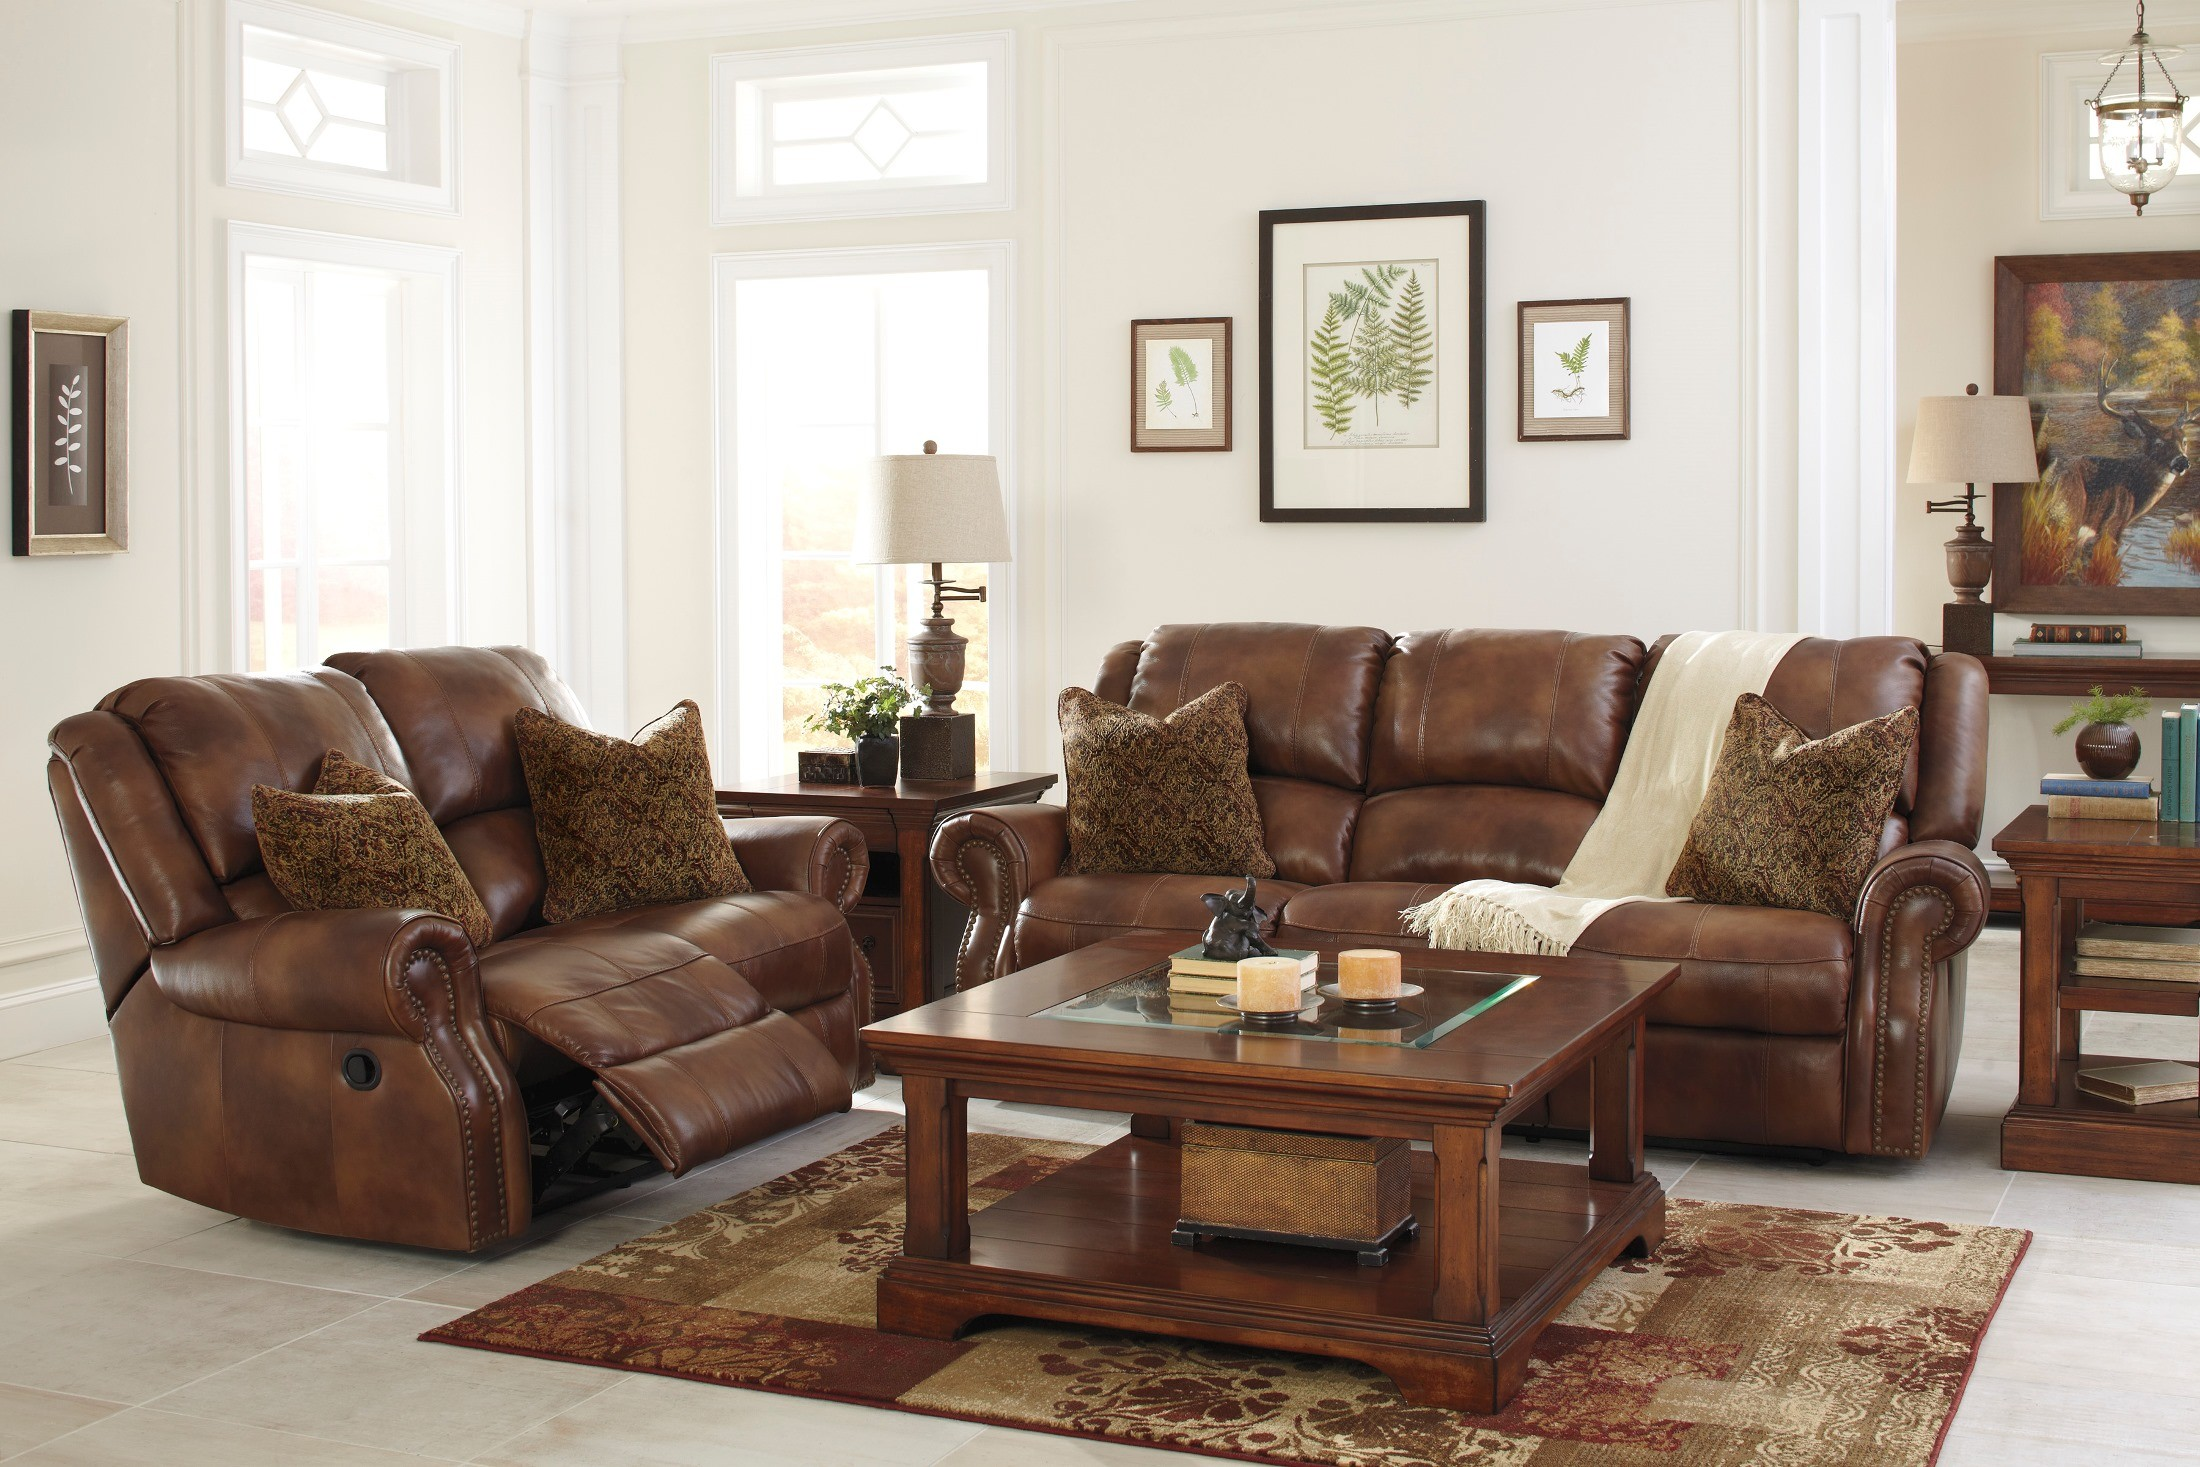 Walworth auburn power reclining living room set from for Cheap reclining living room sets